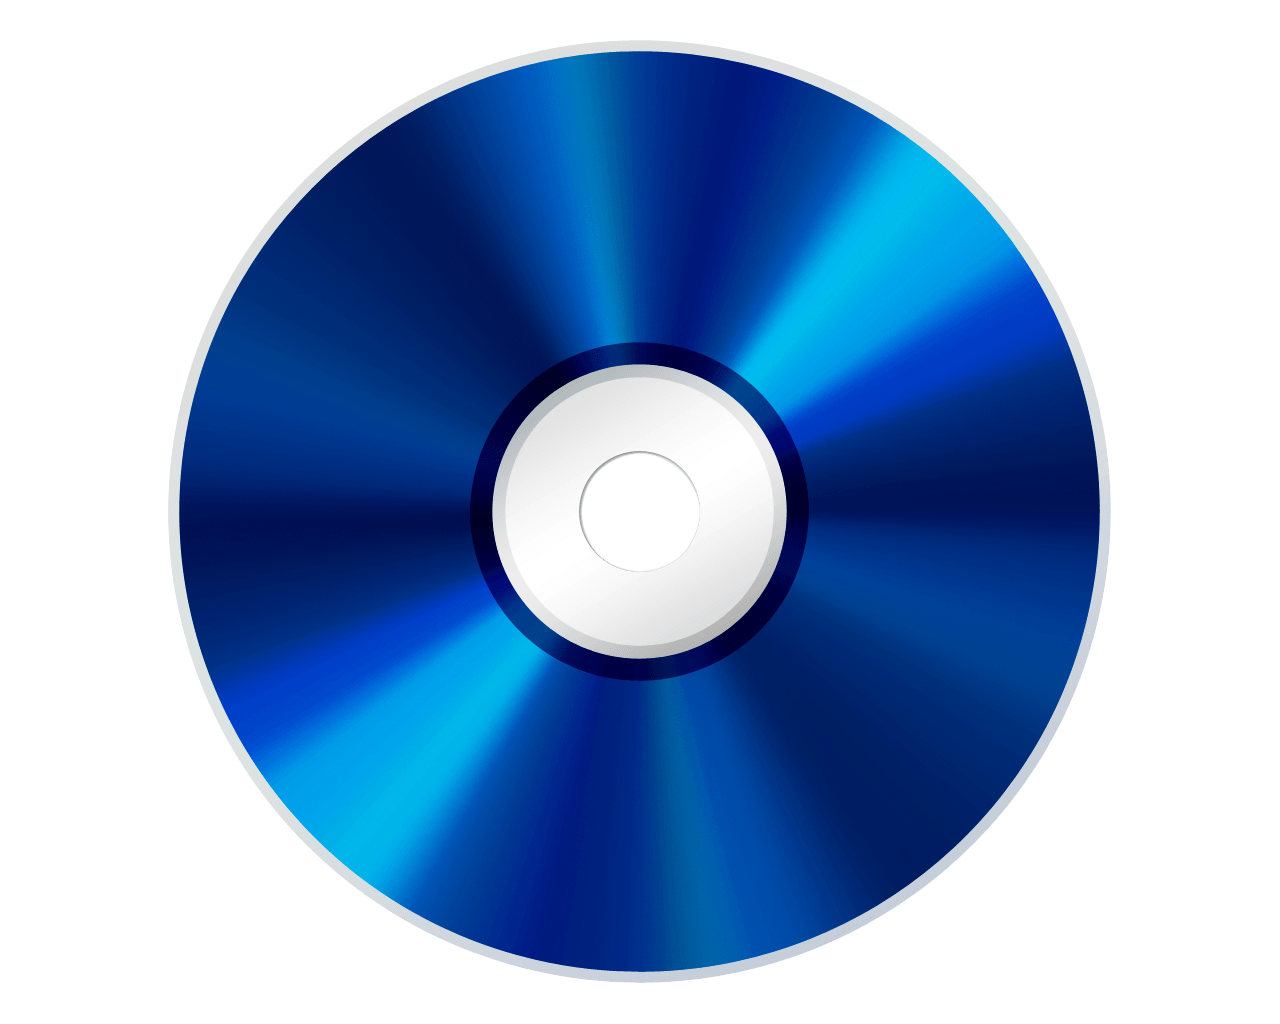 Compact Cd Dvd Disk Png Image PNG Image